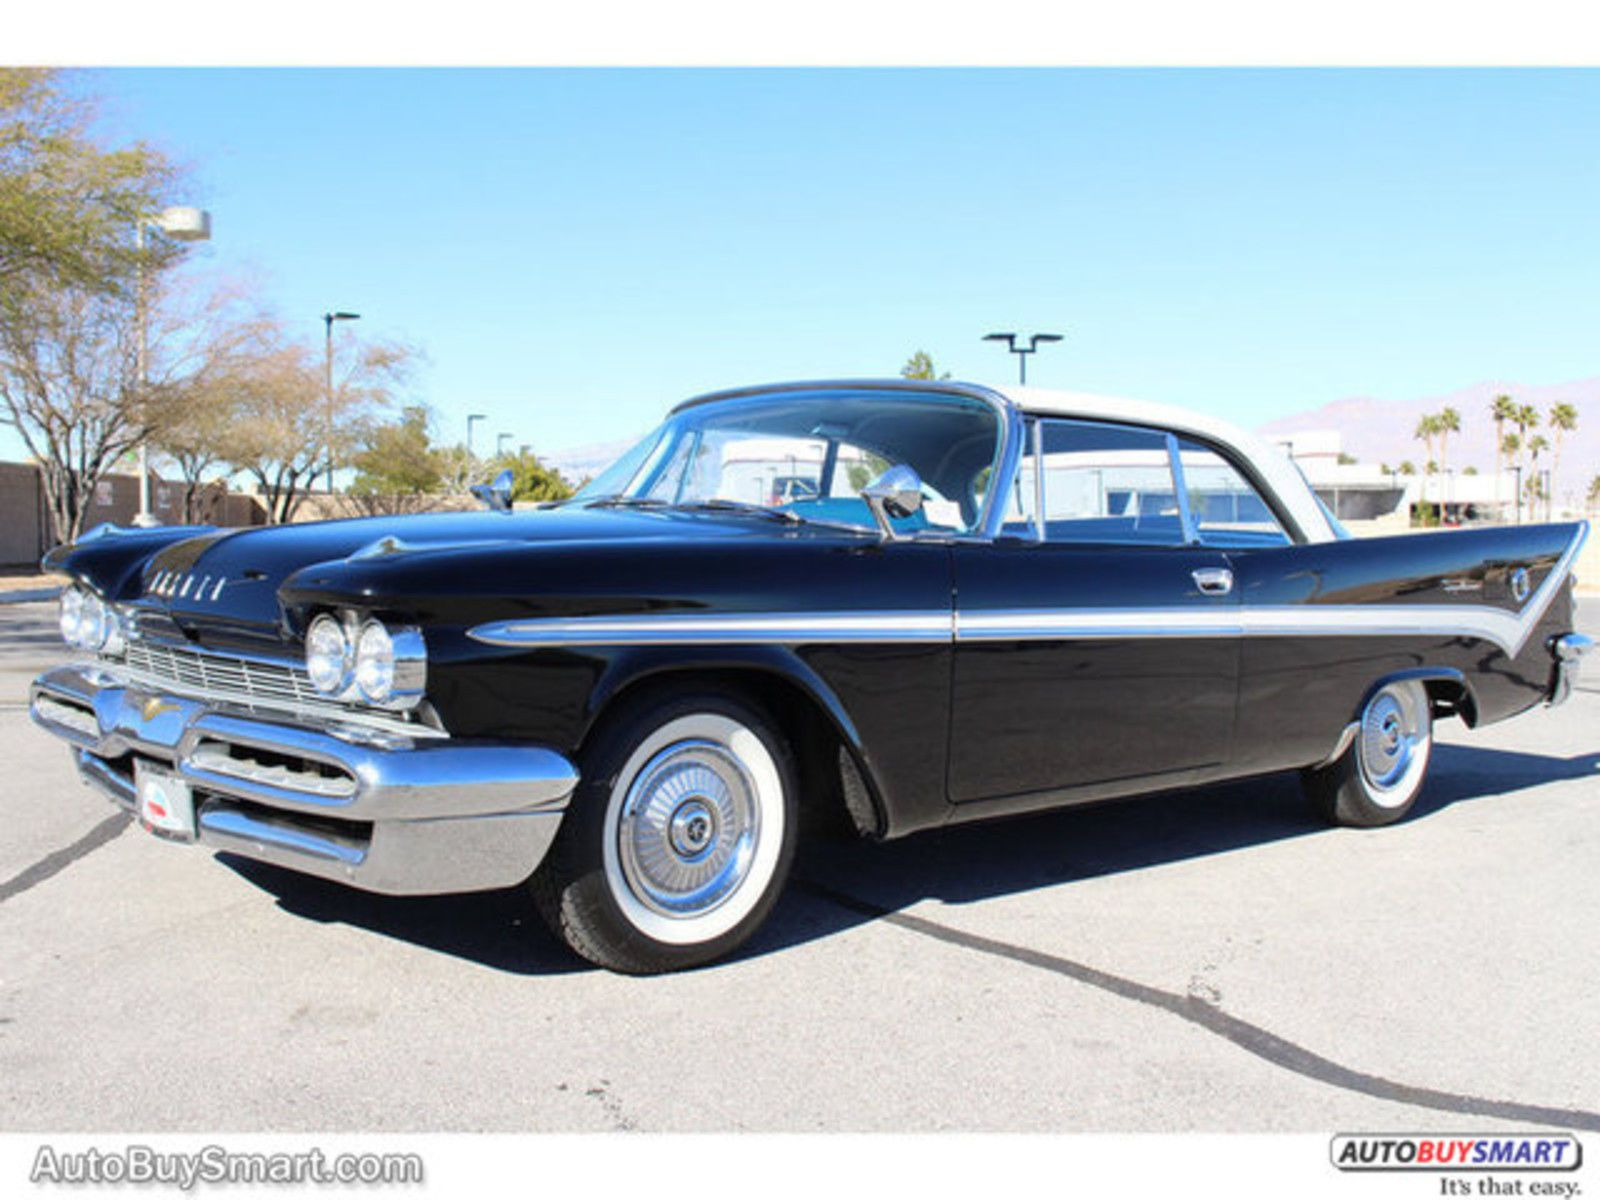 1955 dodge royal lancer convertible cream black fvr cars - 1949 Desoto Custom Convertible Coupe Desoto Customconvertiblecoupe Forsale Canada Cars For Sale Pinterest Coupe Convertible And Cars